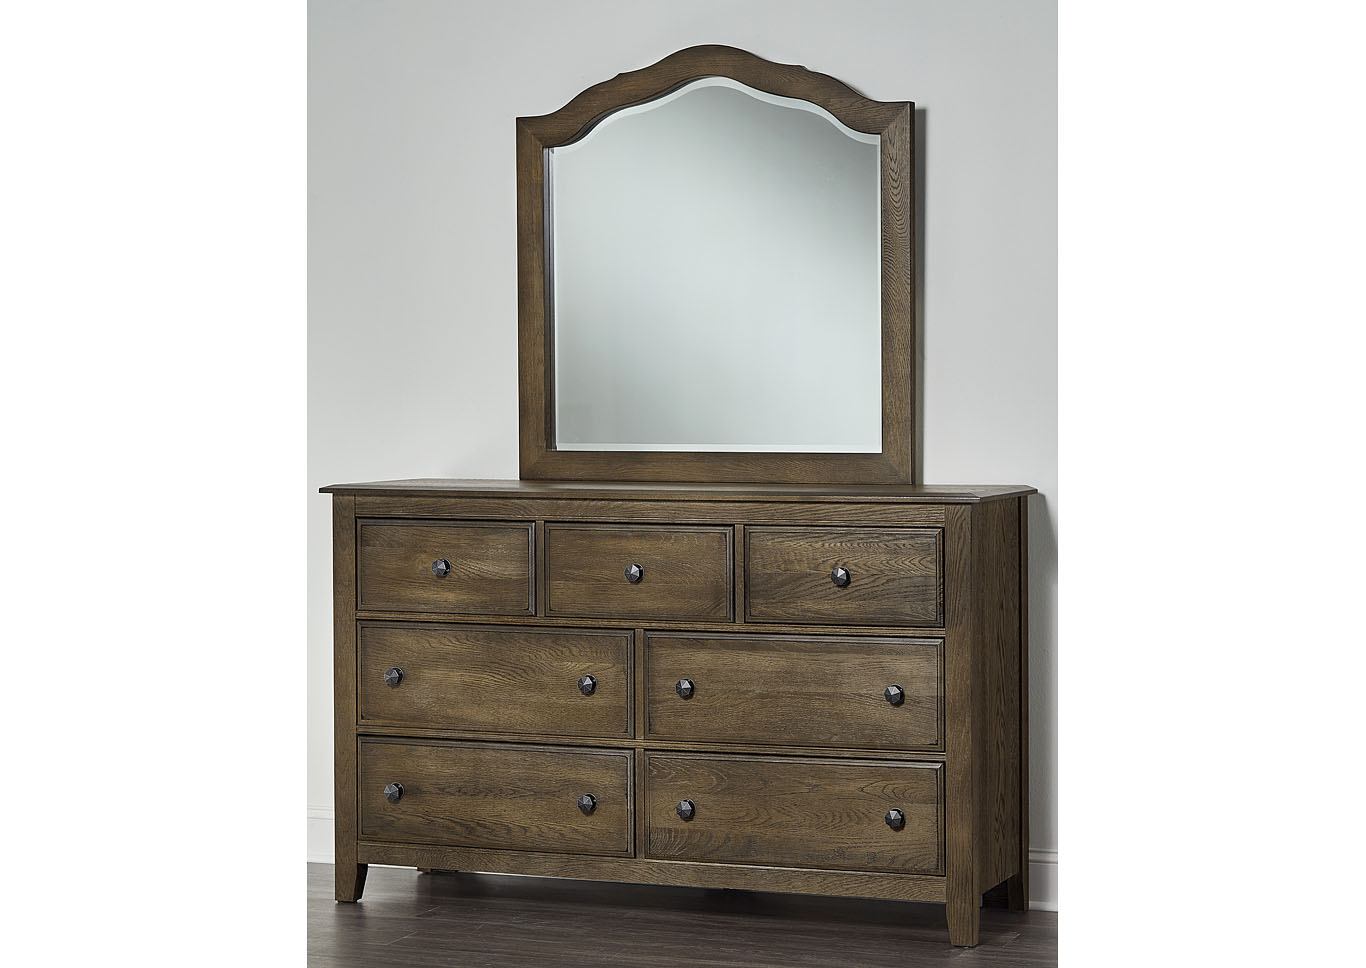 106 - Artisan Choices Dark Oak Loft Triple Dresser - 7 Drawer,Vaughan-Bassett